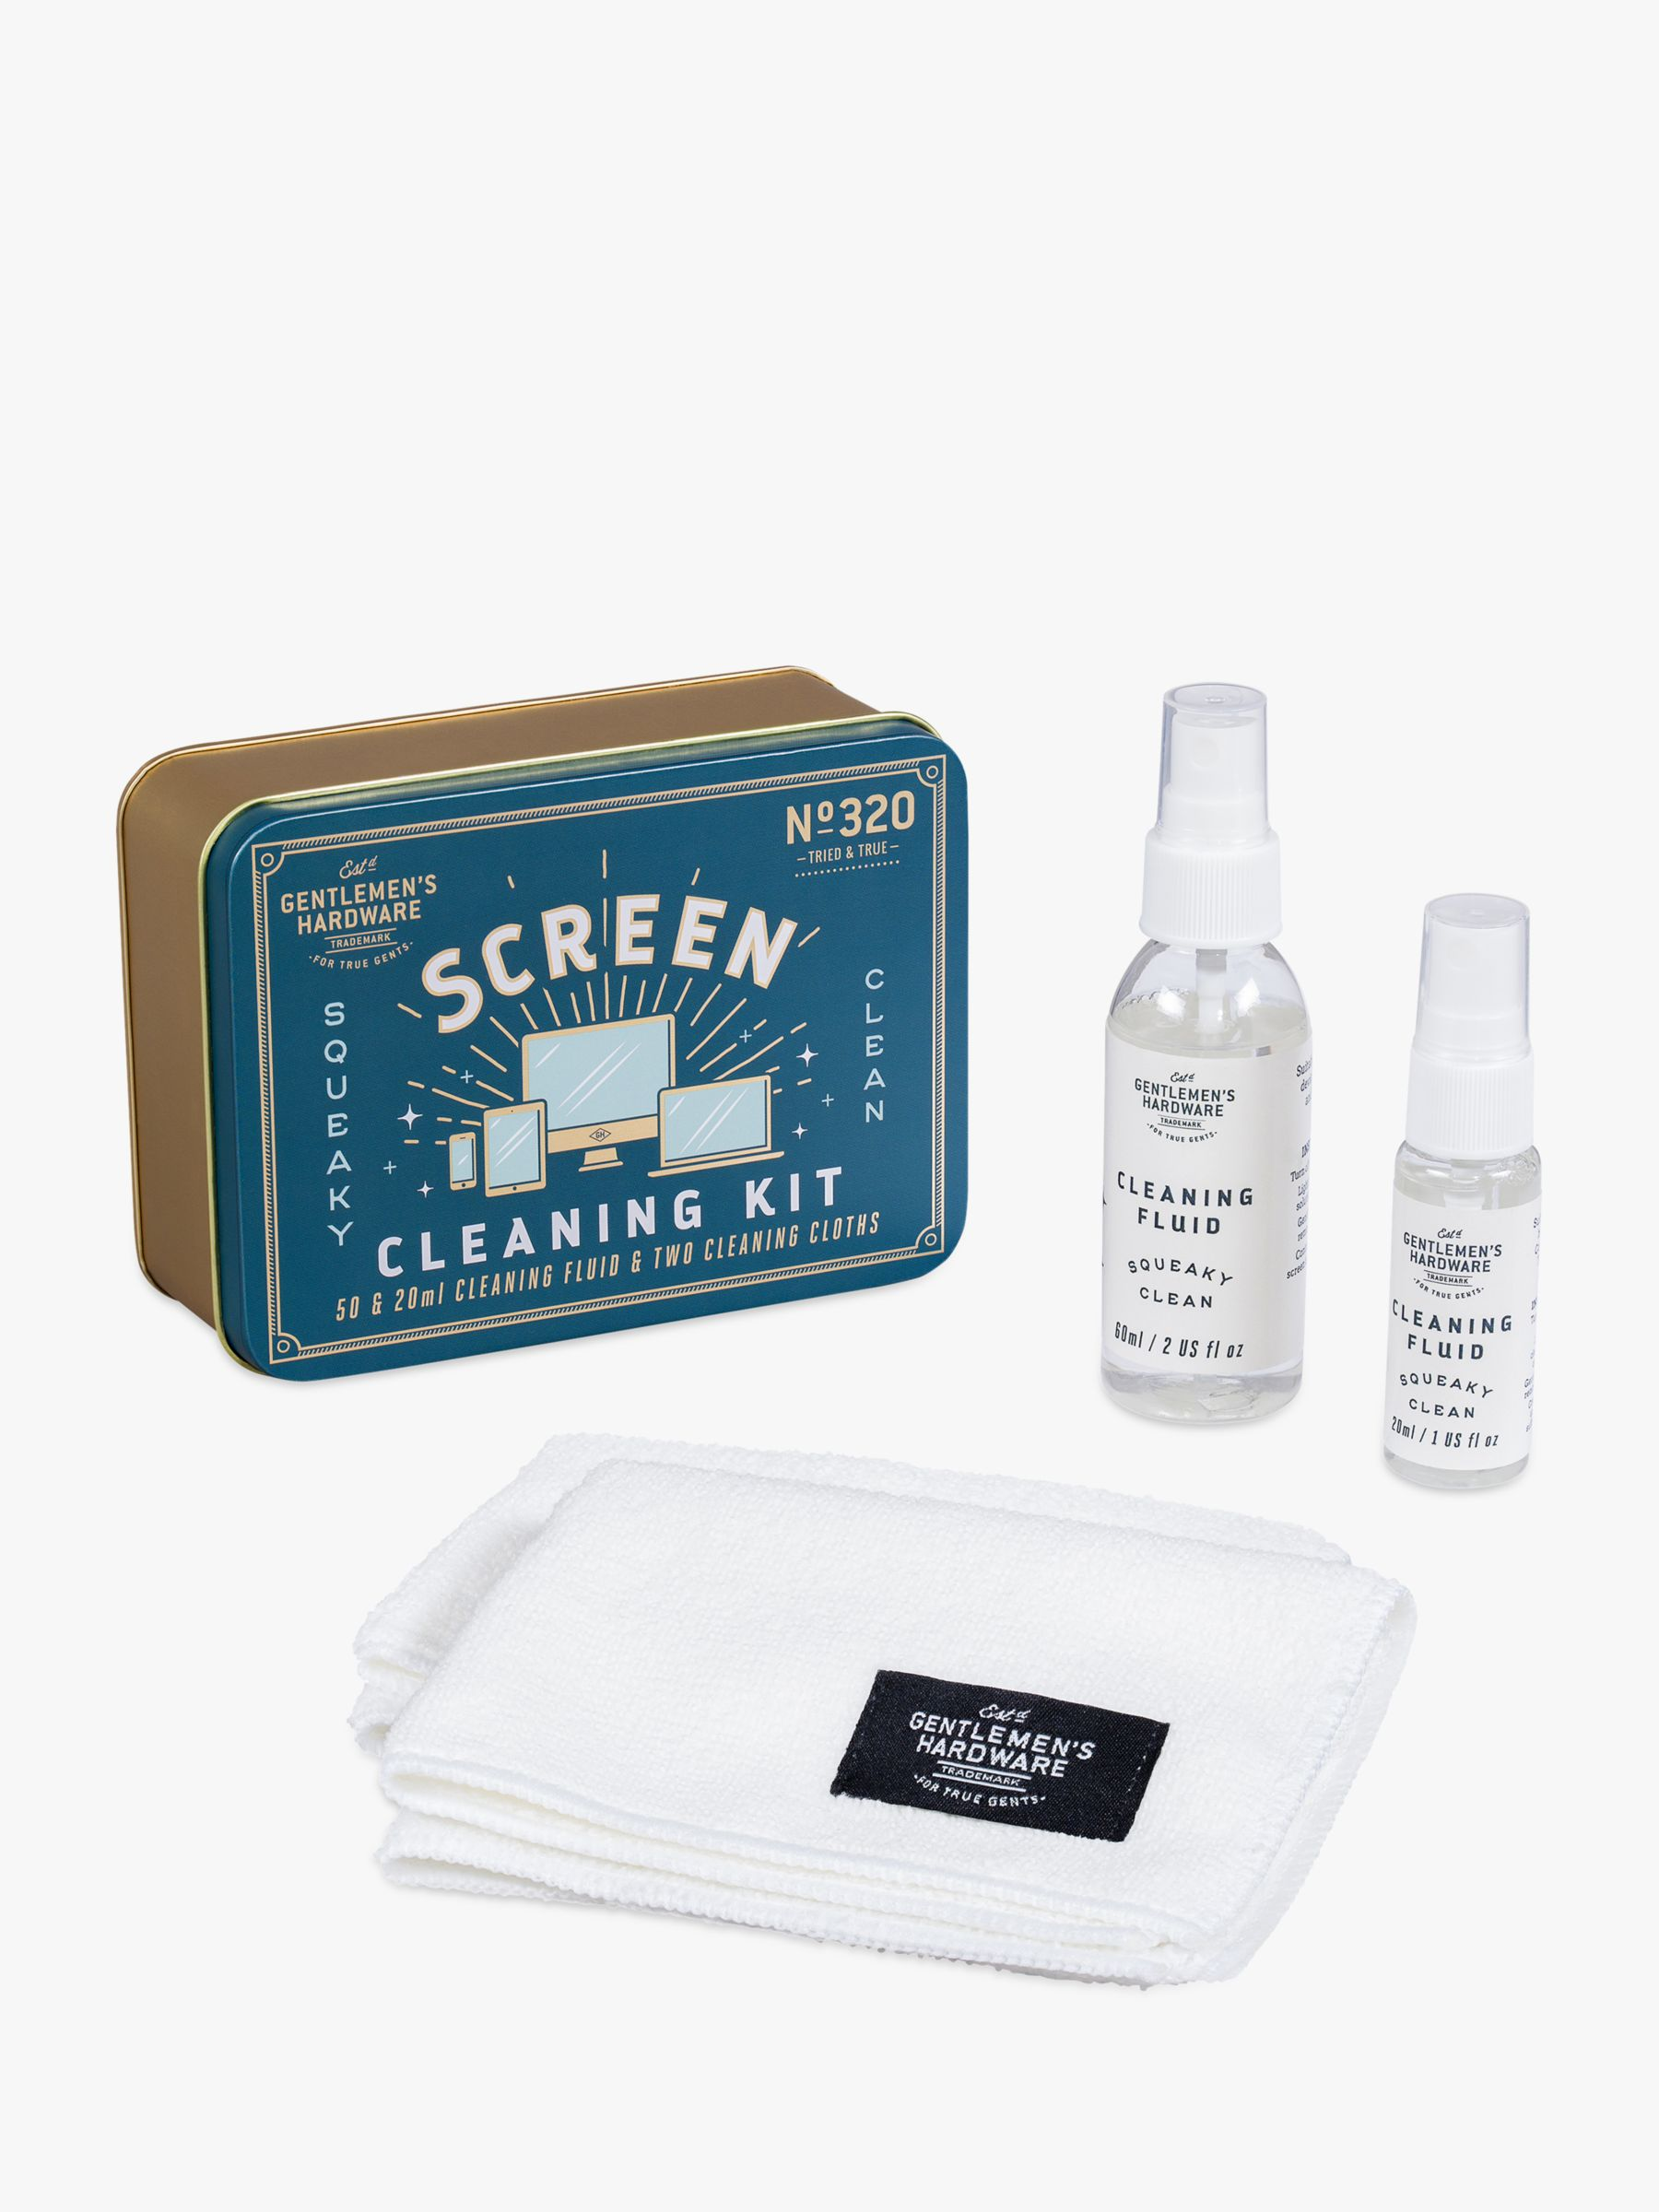 Gentlemen's Hardware Gentlemen's Hardware Screen Cleaning Kit